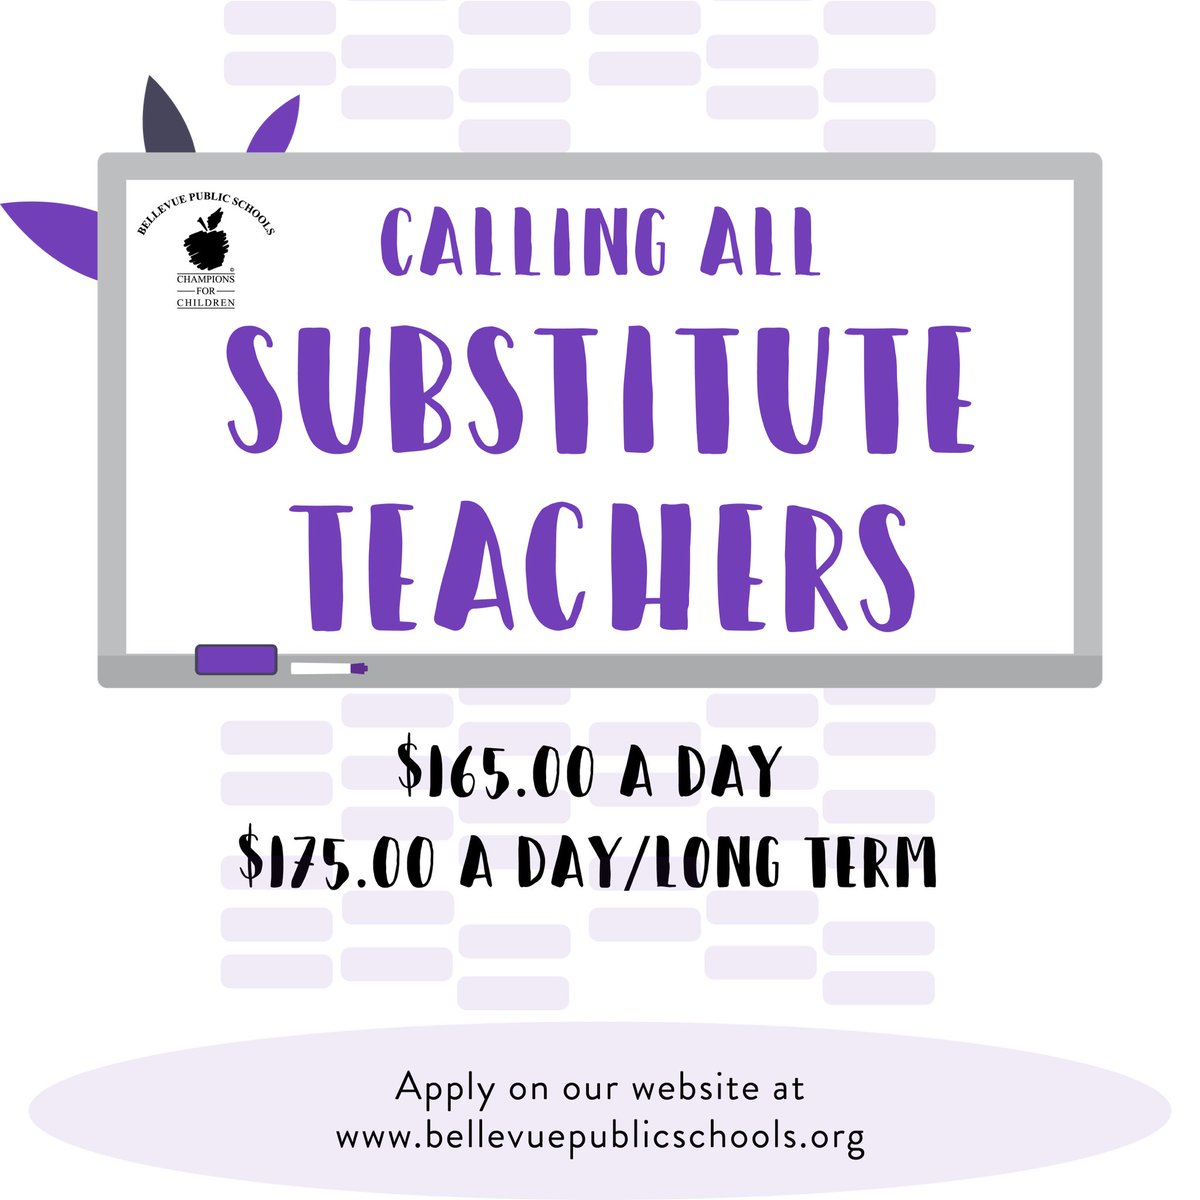 Great News! BPS School Board just approved...  Attention substitute teachers - check out this opportunity to work with BPS: https://t.co/mAOboJEme5   #ChampionsForChildren #TeamBPS #StrongerTogether #bpsne https://t.co/zFc5Pl9Lb4